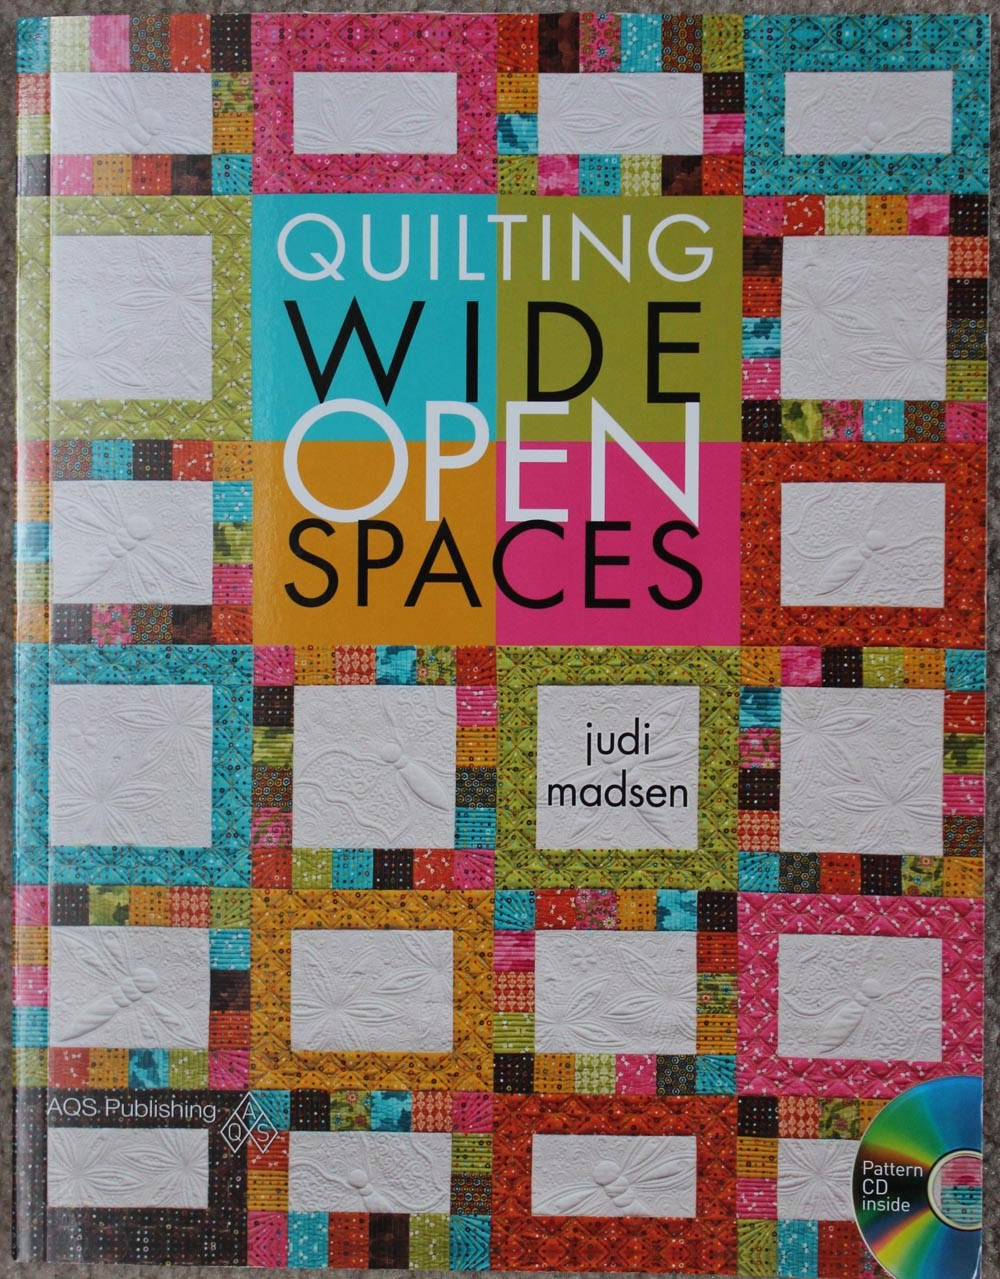 http://www.amazon.com/dp/160460106X?tag=quiltfab-20&camp=0&creative=0&linkCode=as1&creativeASIN=160460106X&adid=0679W1NRR0BC6RKJJDP2